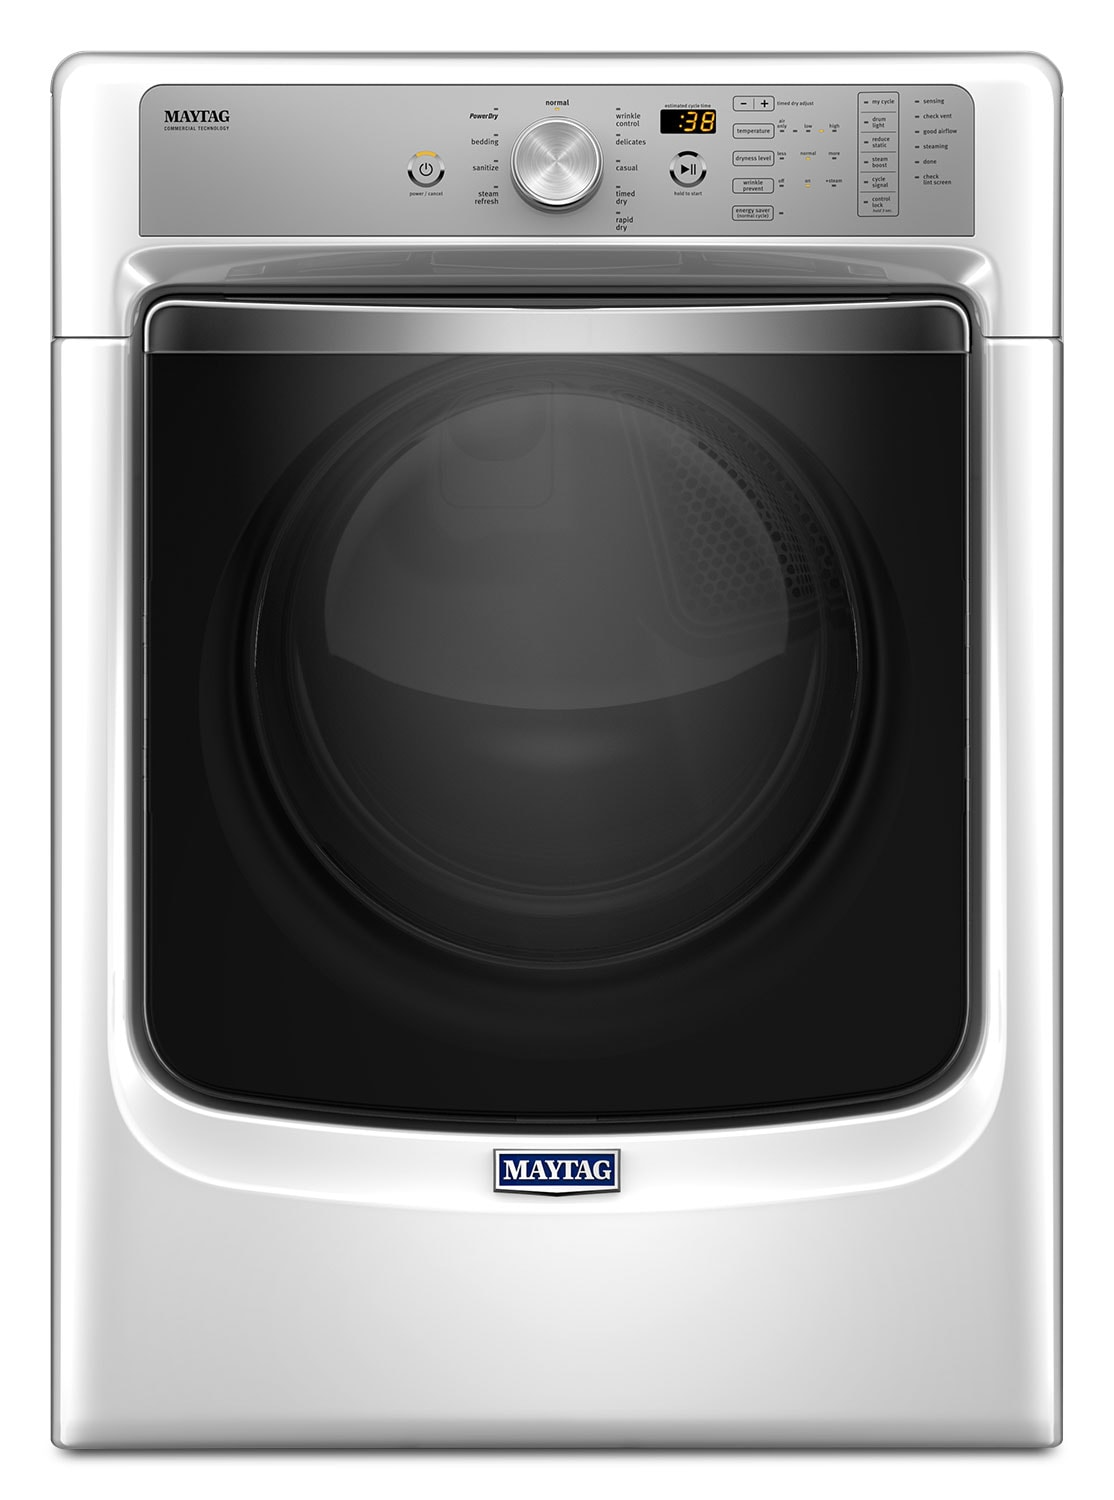 Washers and Dryers - Maytag 7.4 Cu. Ft. Electric Dryer – YMED8200FW